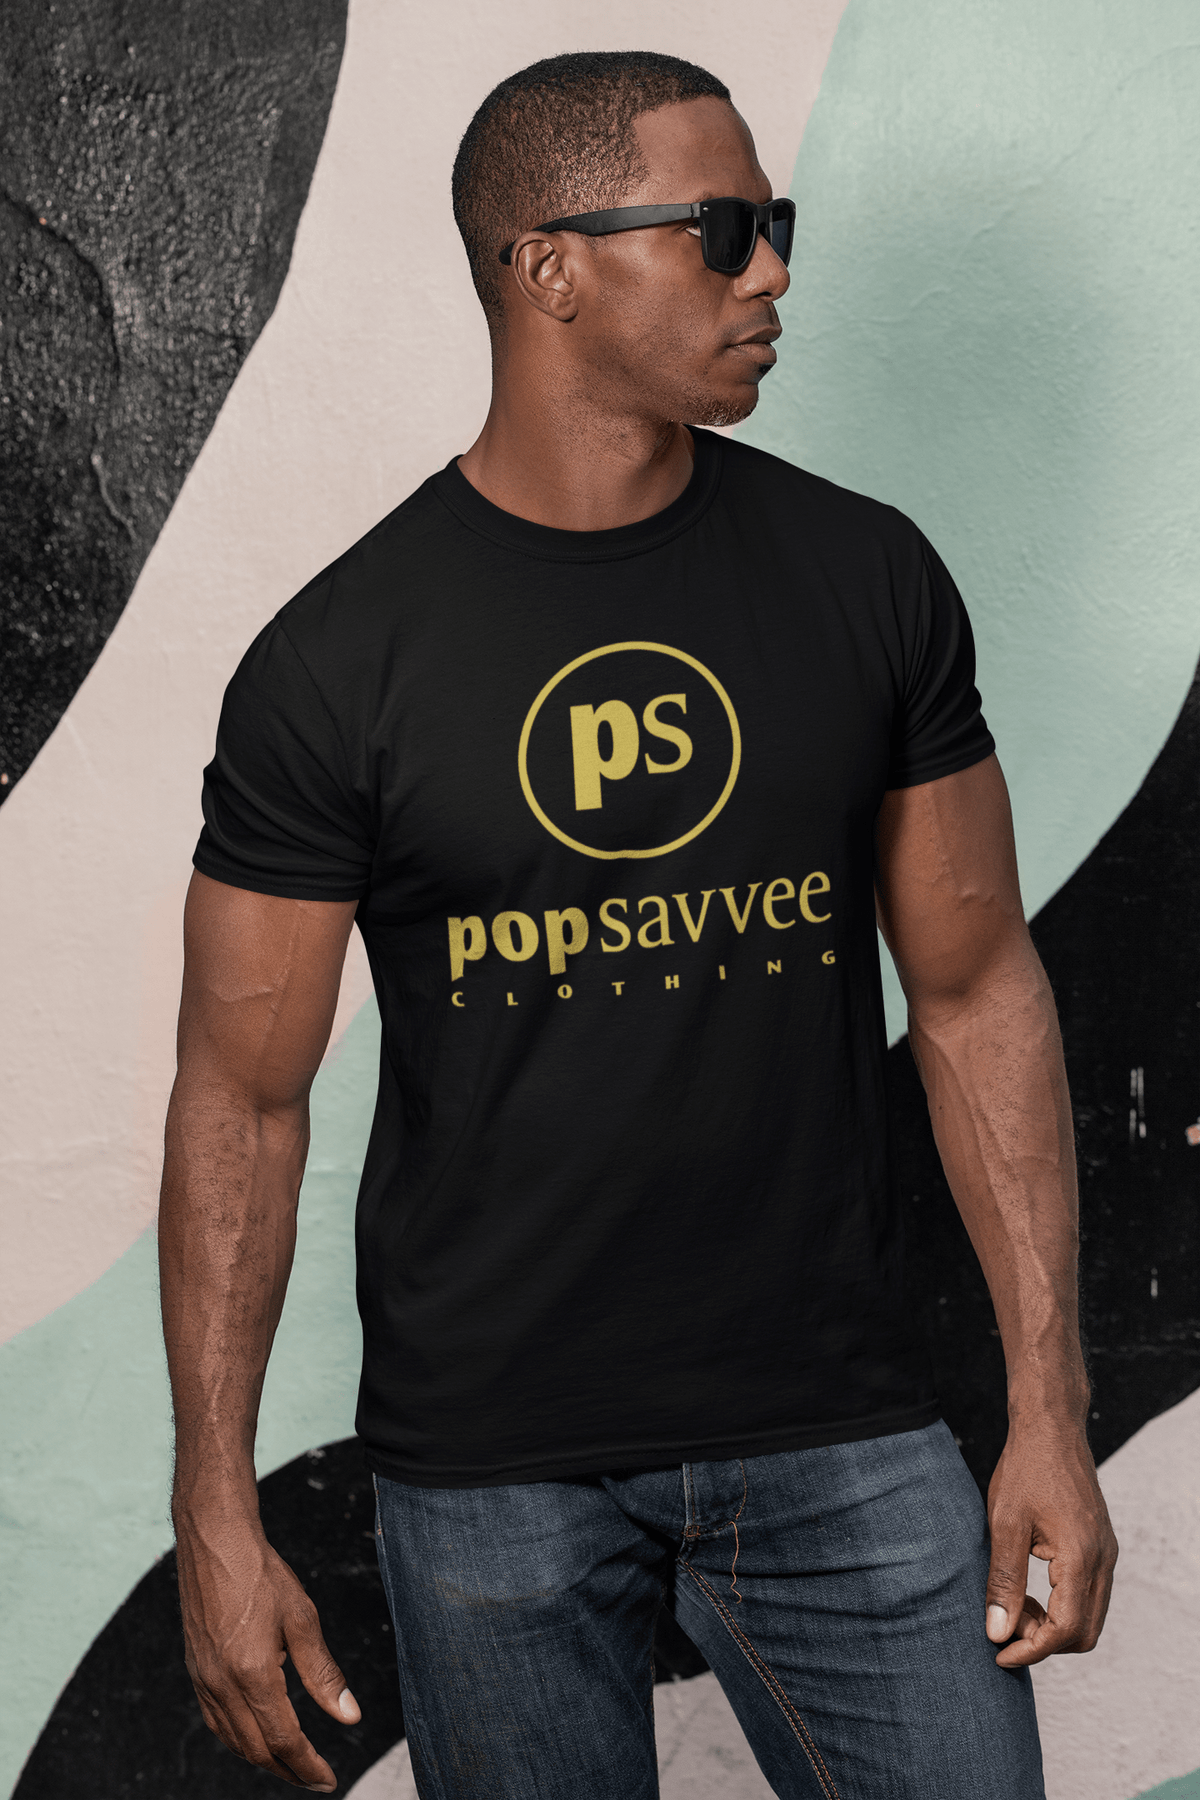 GOLD LABEL COLLECTION - Pop Savvee Clothing